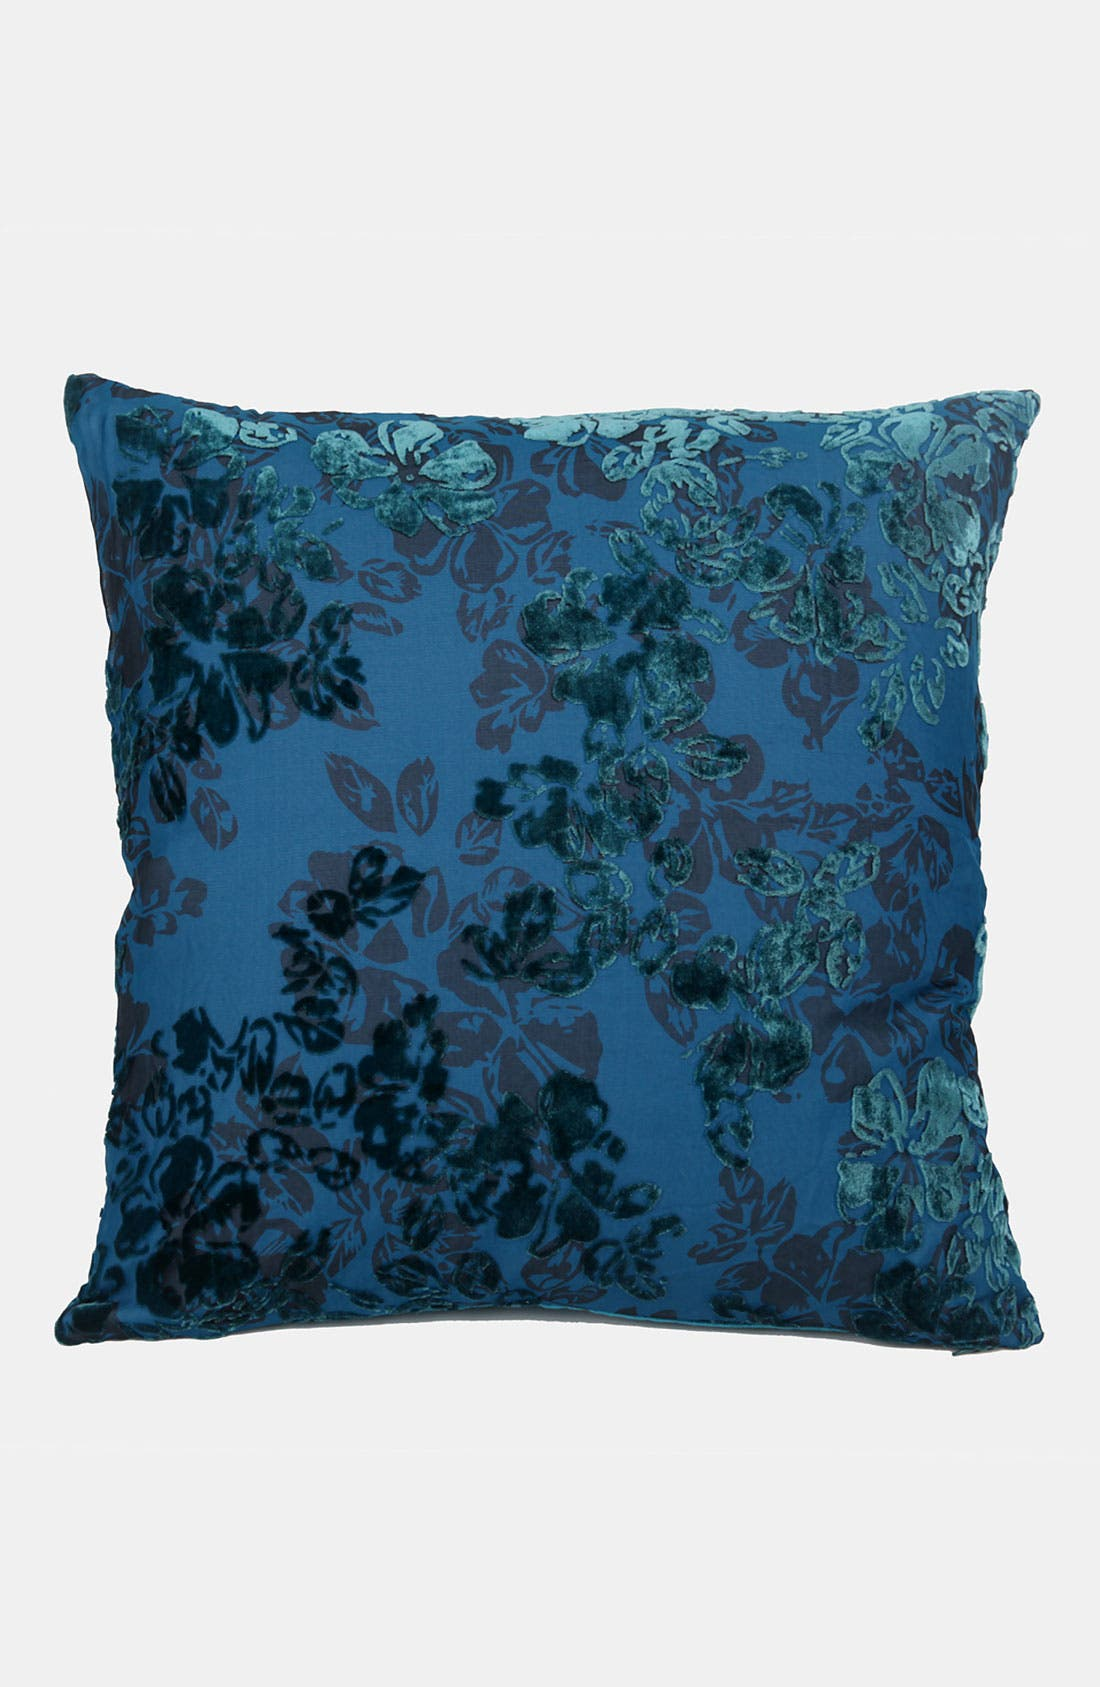 Alternate Image 1 Selected - Blissliving Home 'Anastasia' Square Pillow (Online Only)